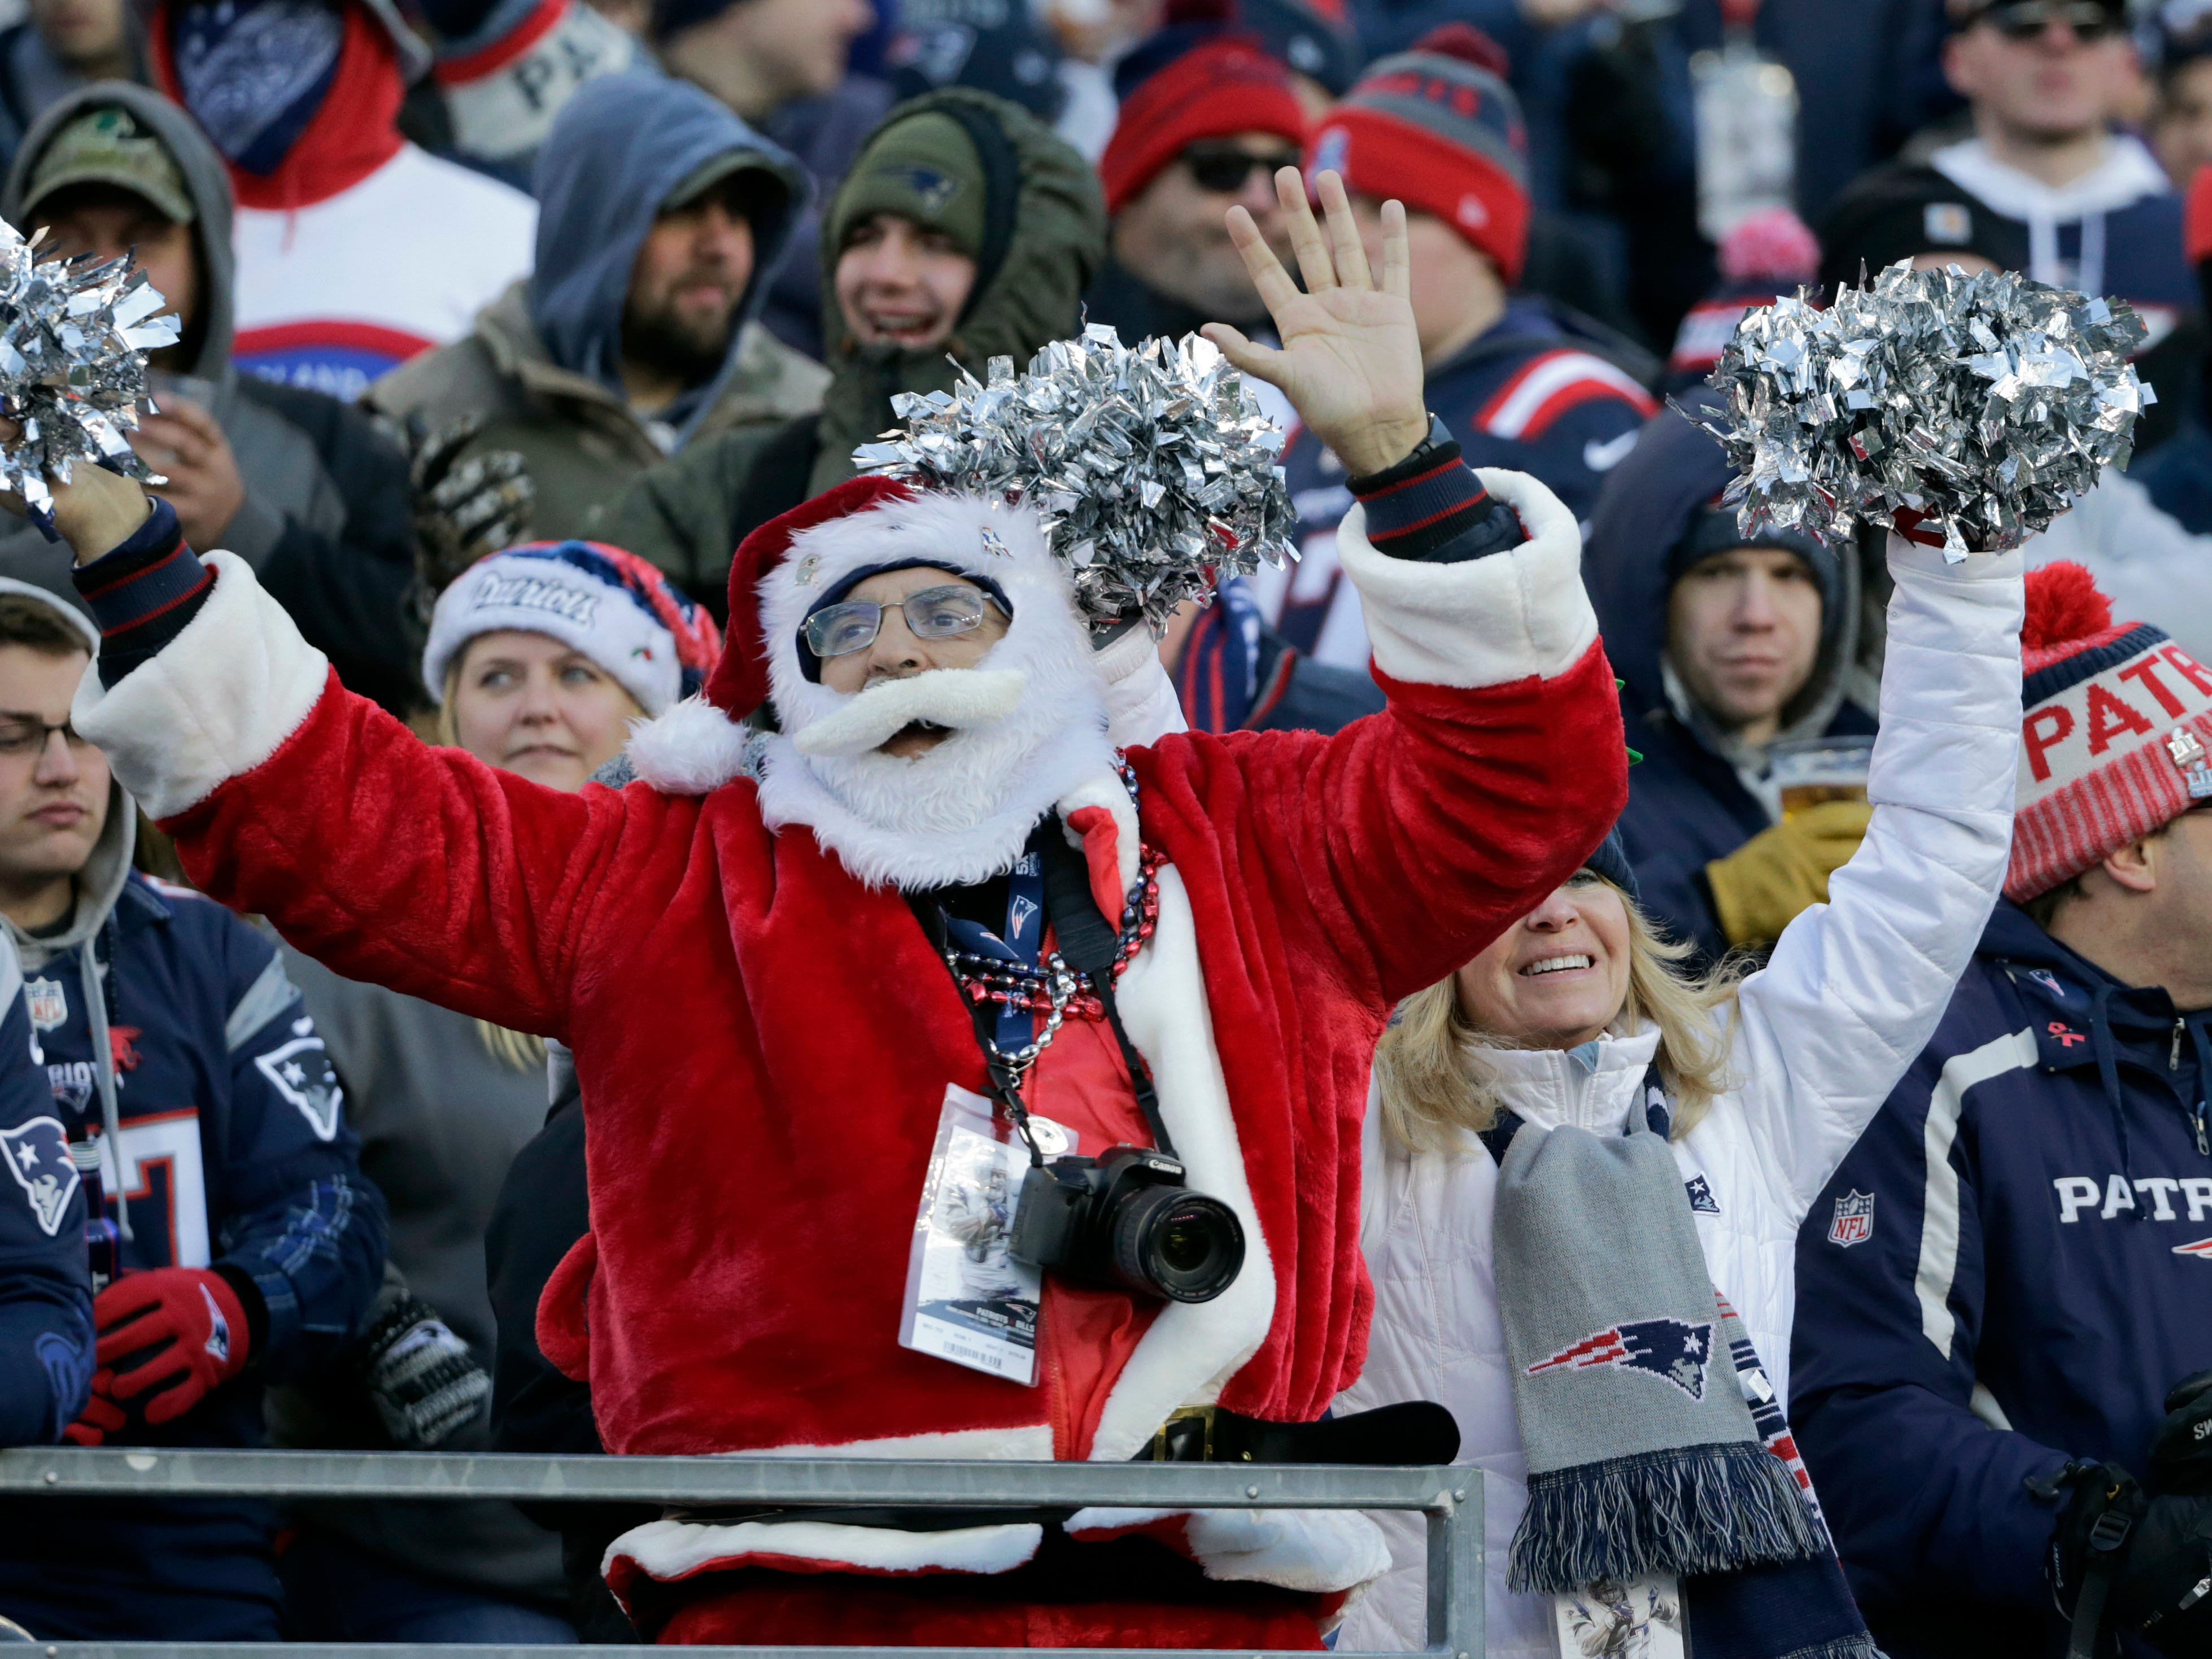 Fans wearing Christmas outfits cheer during the second half of an NFL football game between the New England Patriots and the Buffalo Bills, Sunday, Dec. 23, 2018, in Foxborough, Mass. (AP Photo/Elise Amendola)